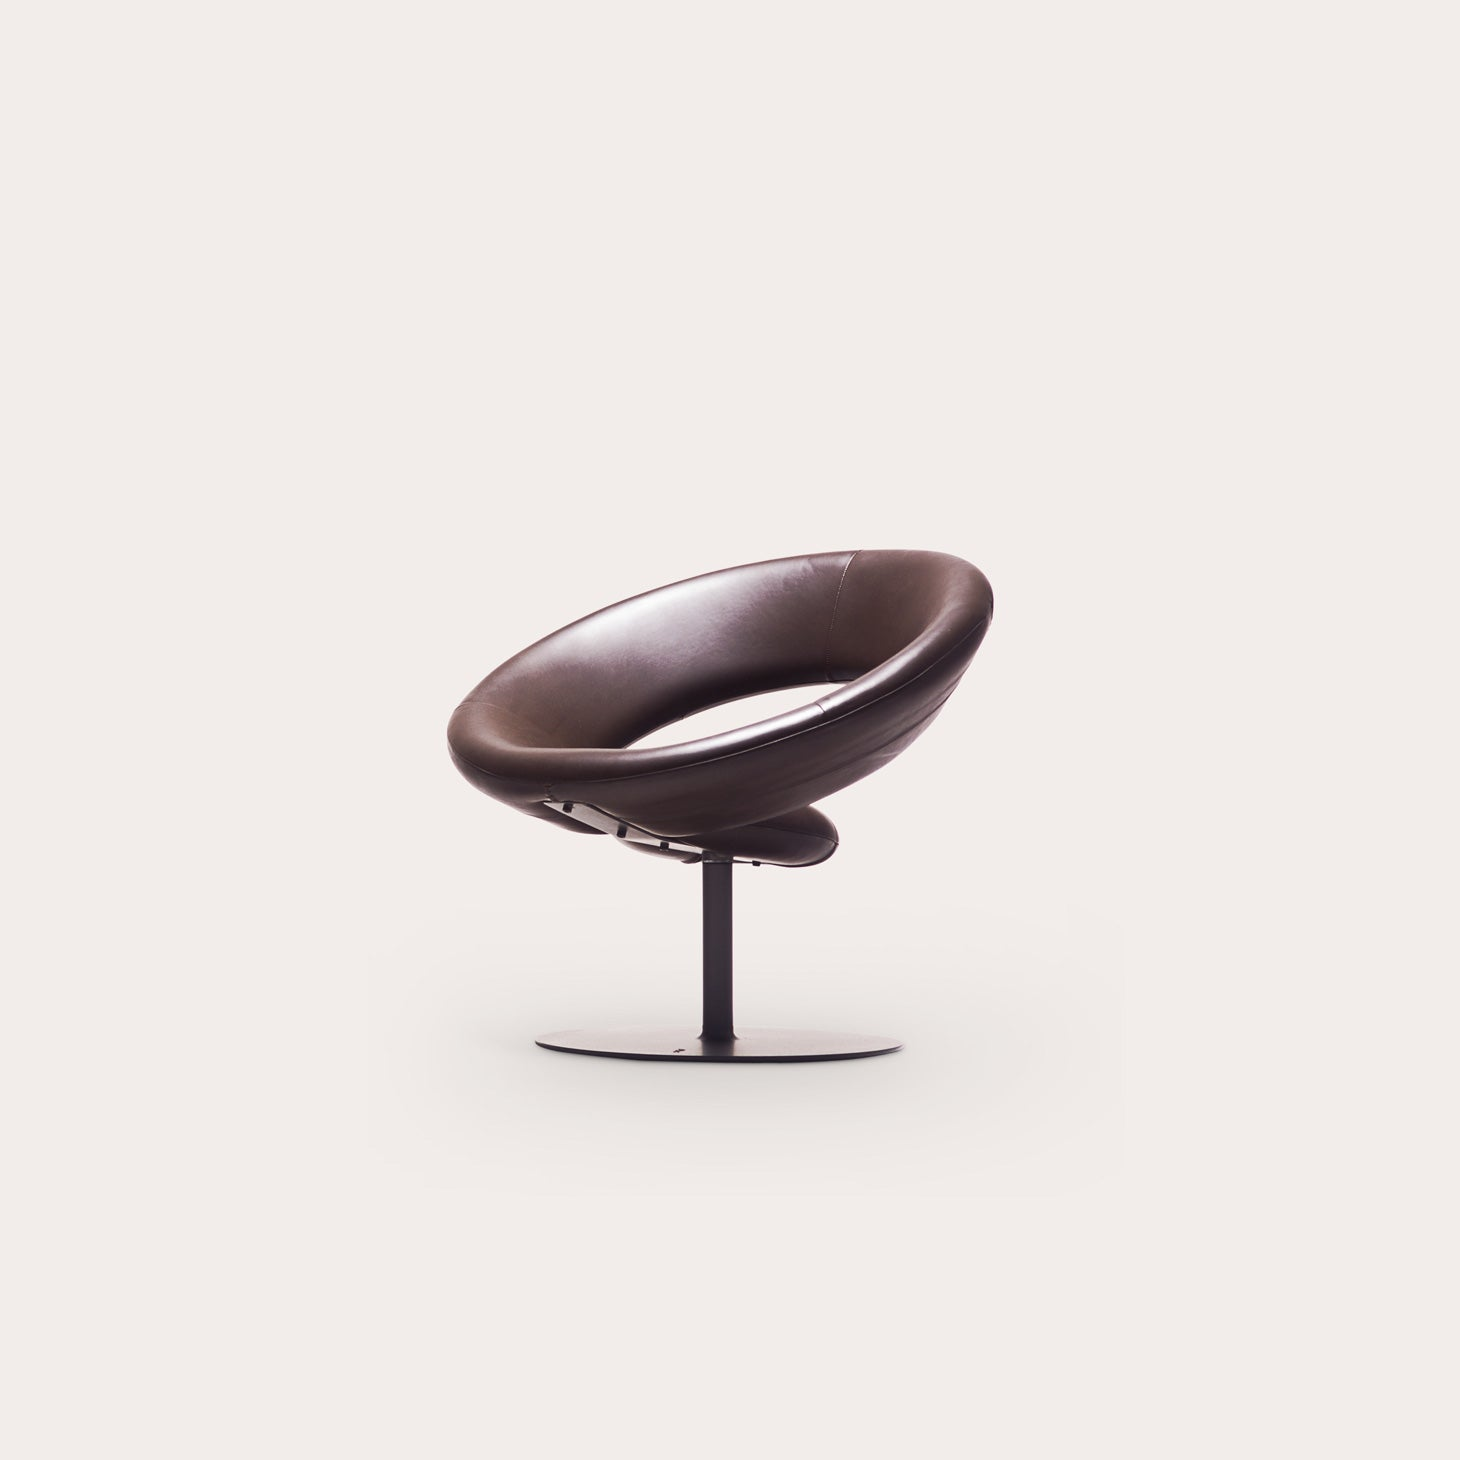 Anel Lounge Chair Seating Ricardo Fasanello Designer Furniture Sku: 003-240-10057